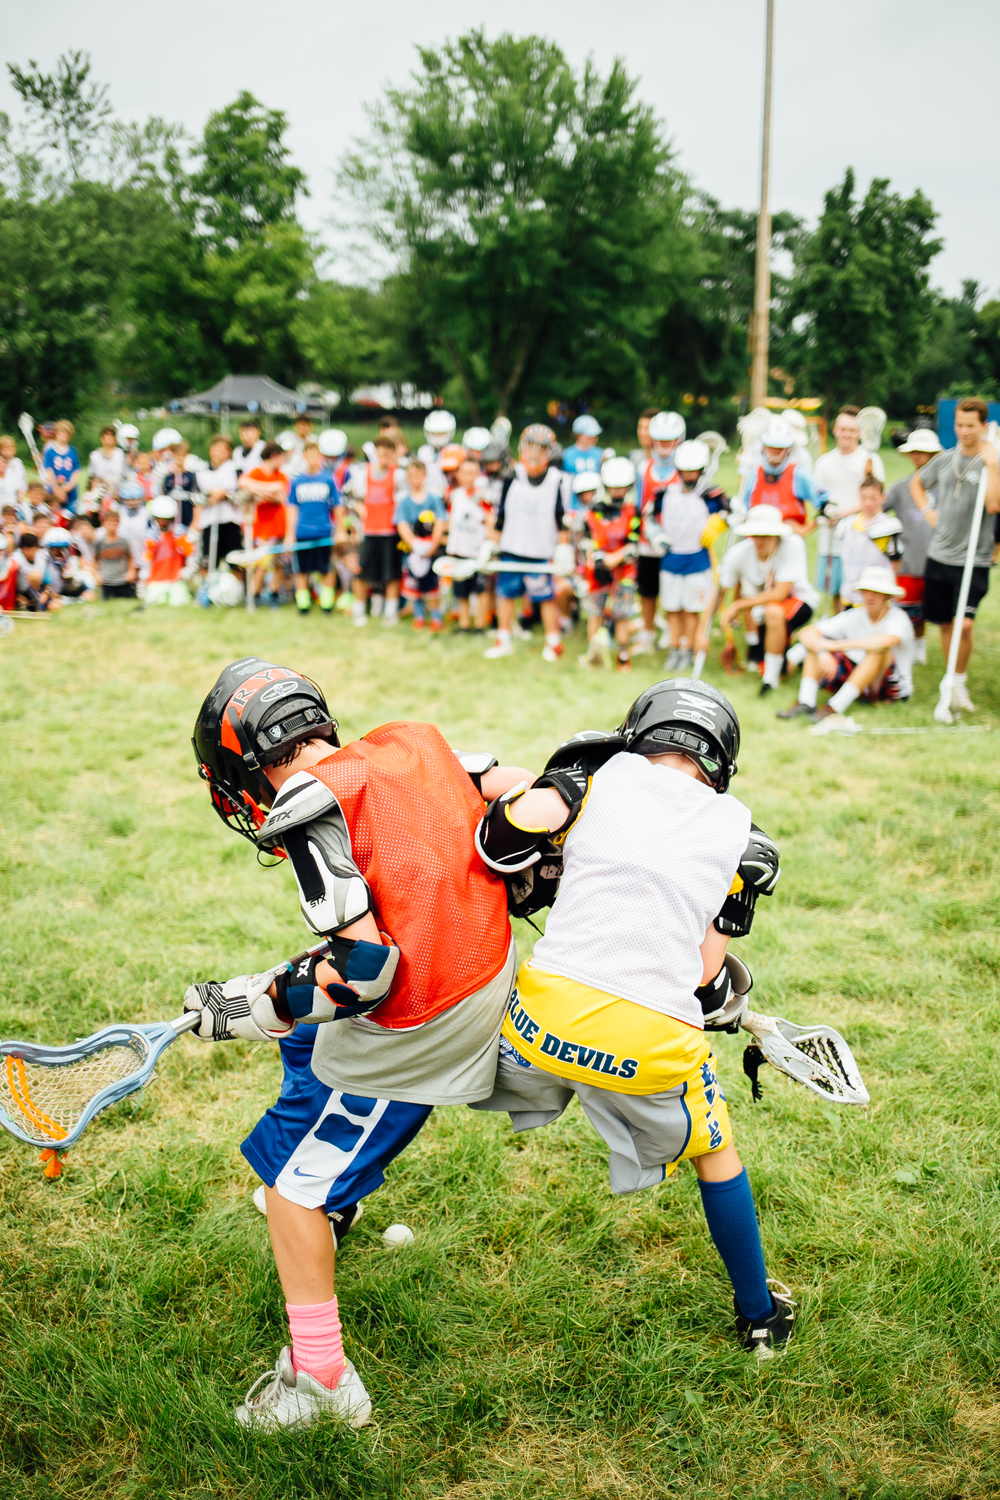 7-15-2015_Predator Lax Camp-150 copy.jpg